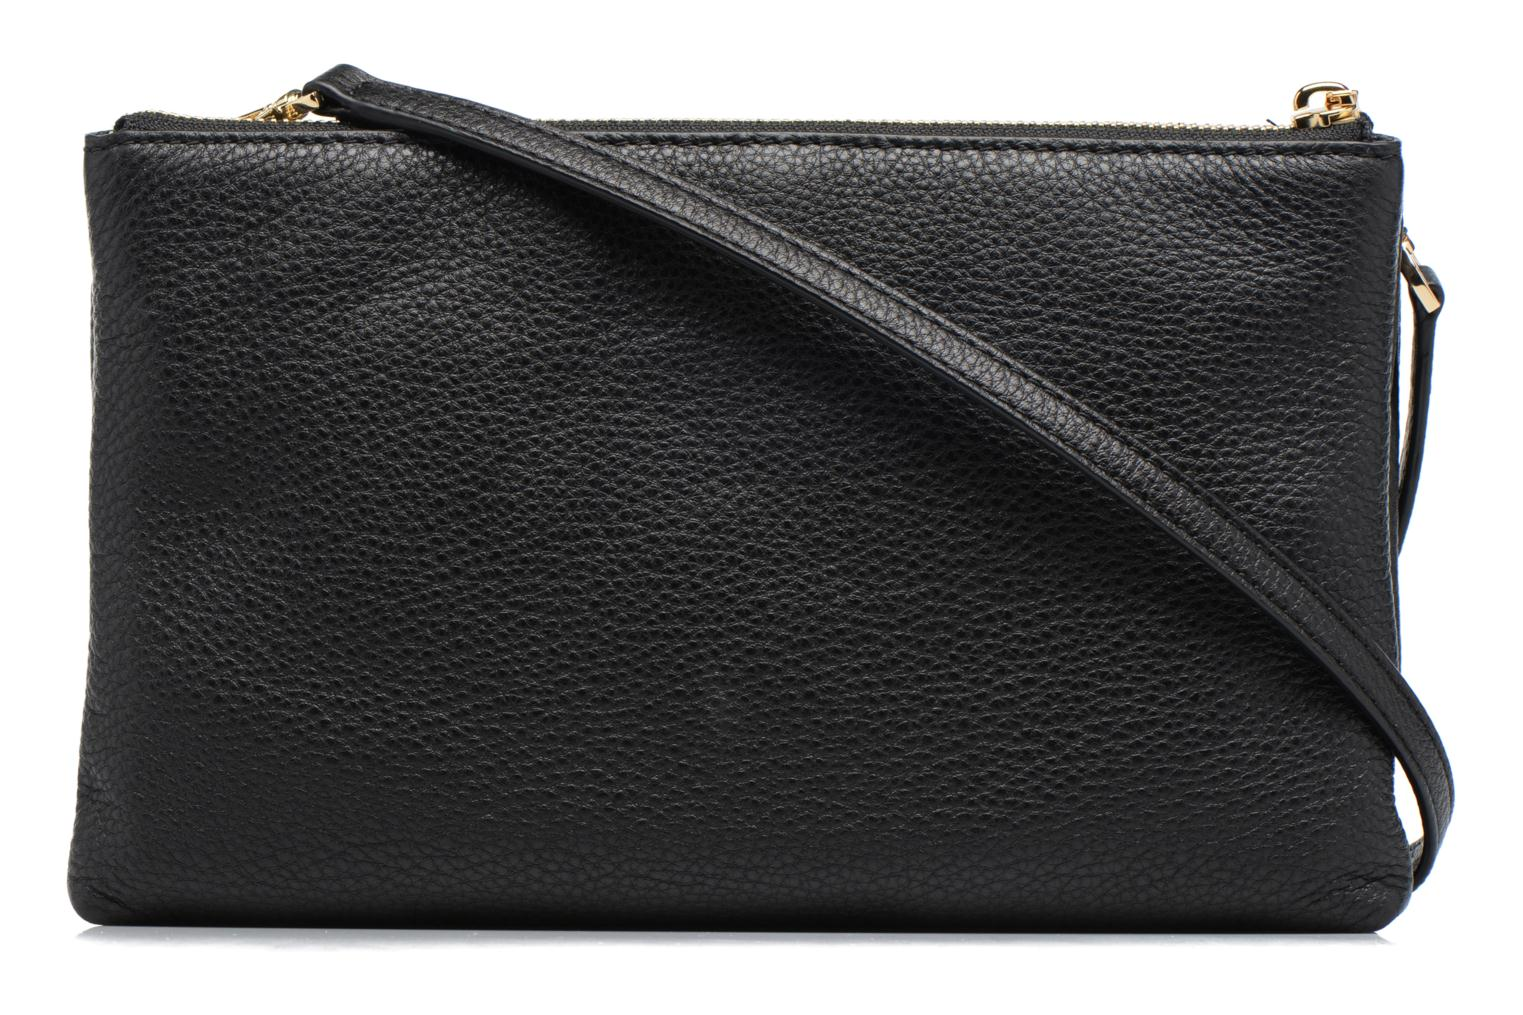 ADELE DBL GUSSET CROSSBODY Black